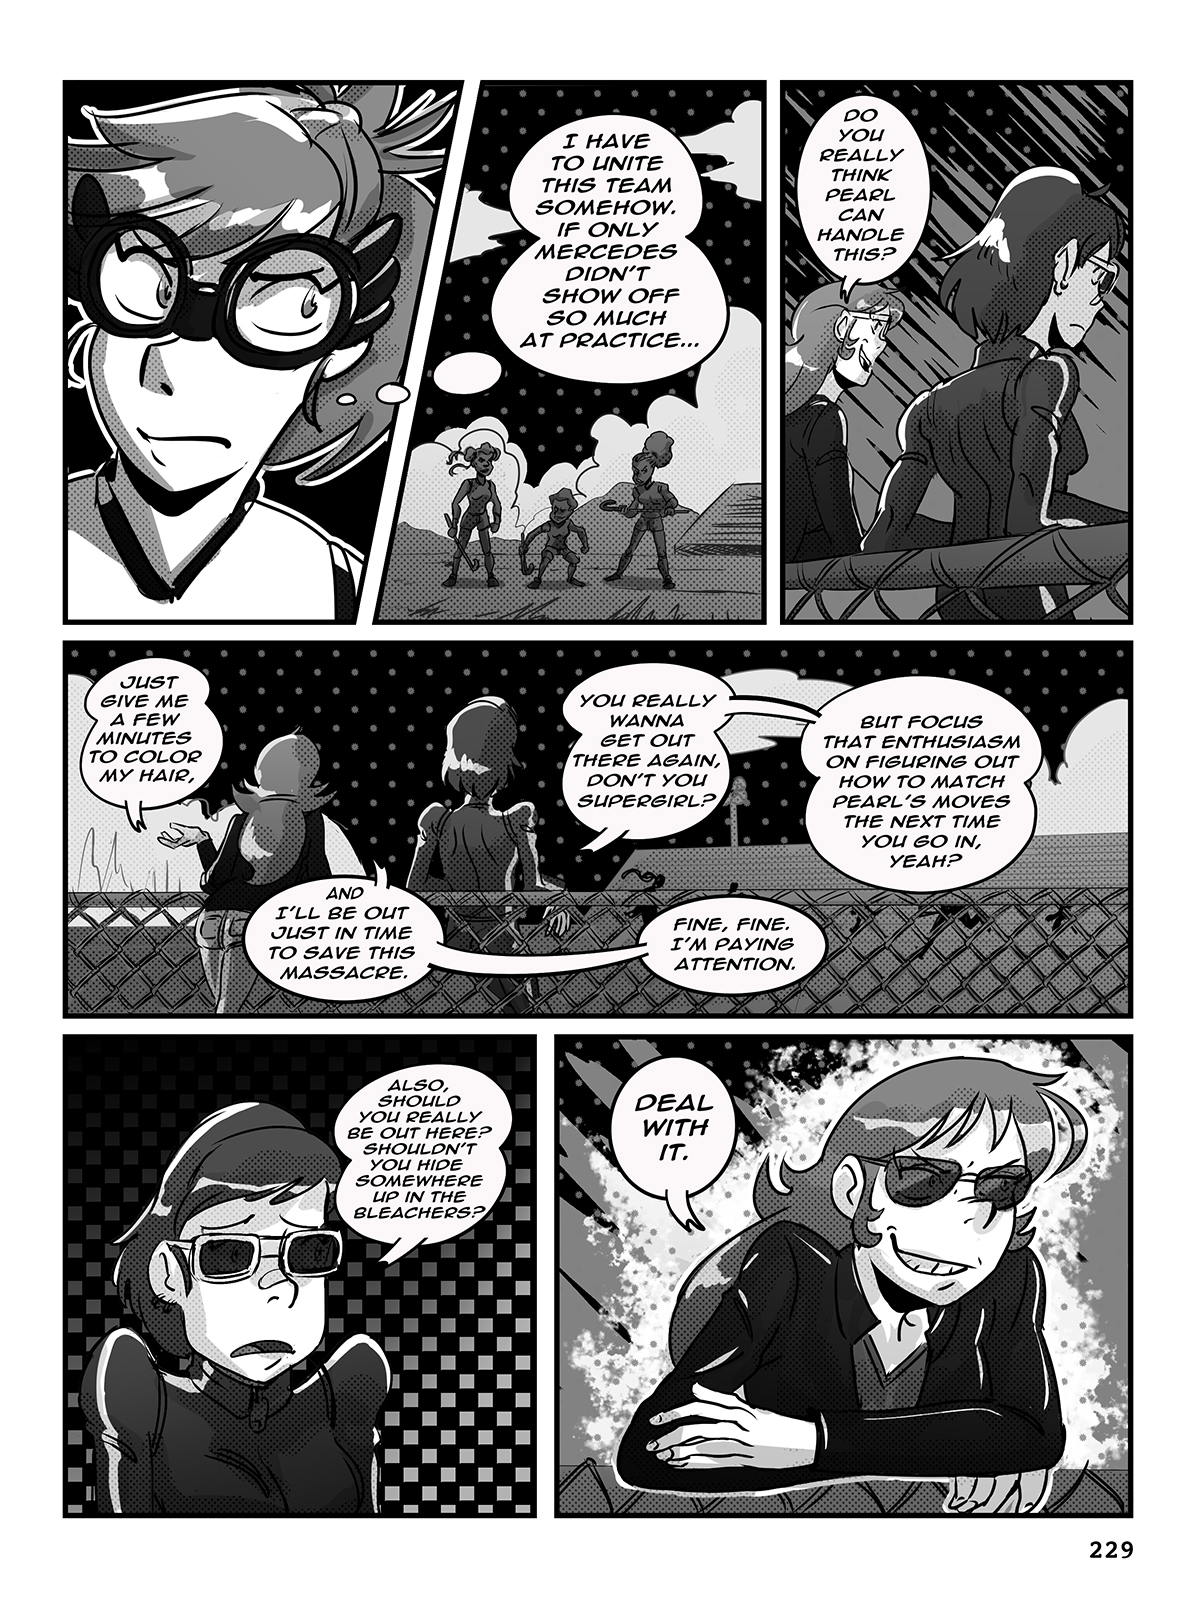 Hockey, Love, & GUTS! – Chapter 9 – Page 229